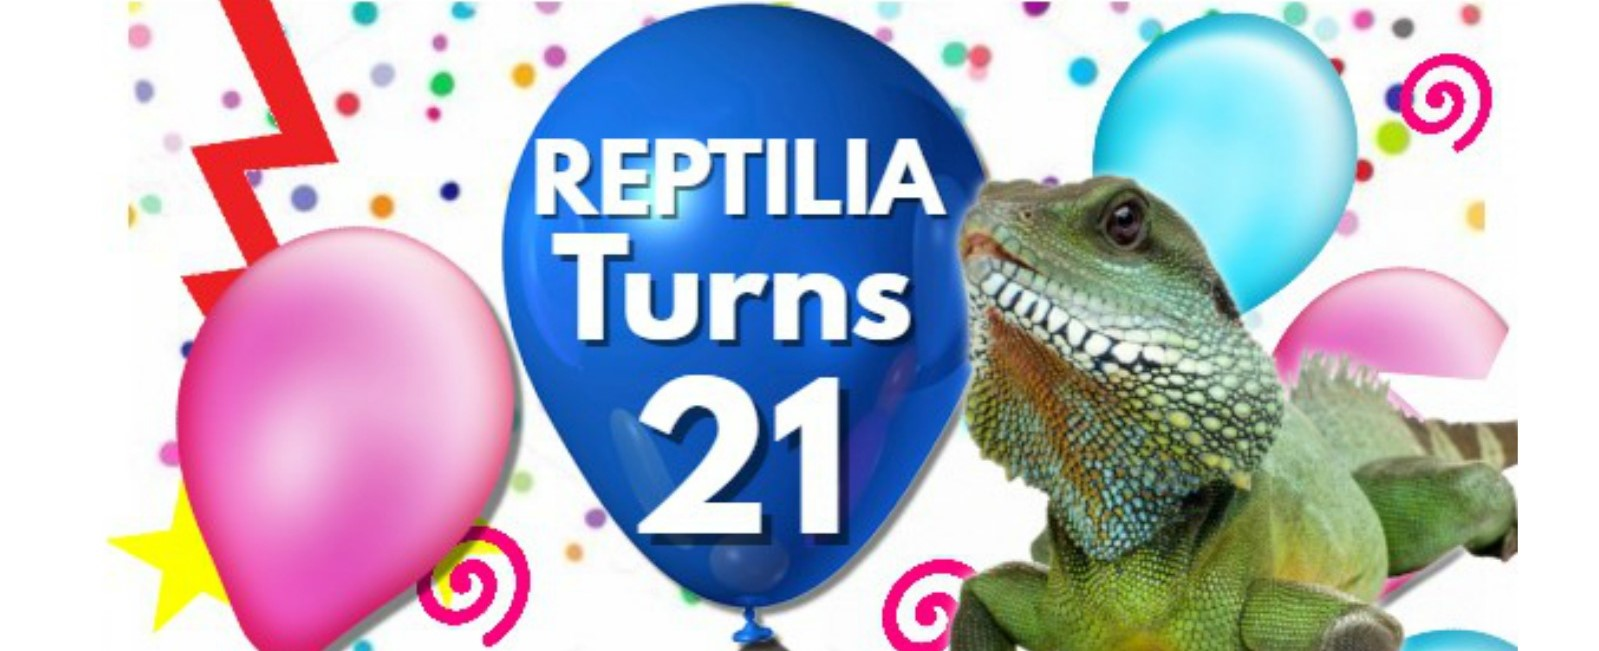 Reptilia Party Is In 2 Weeks!